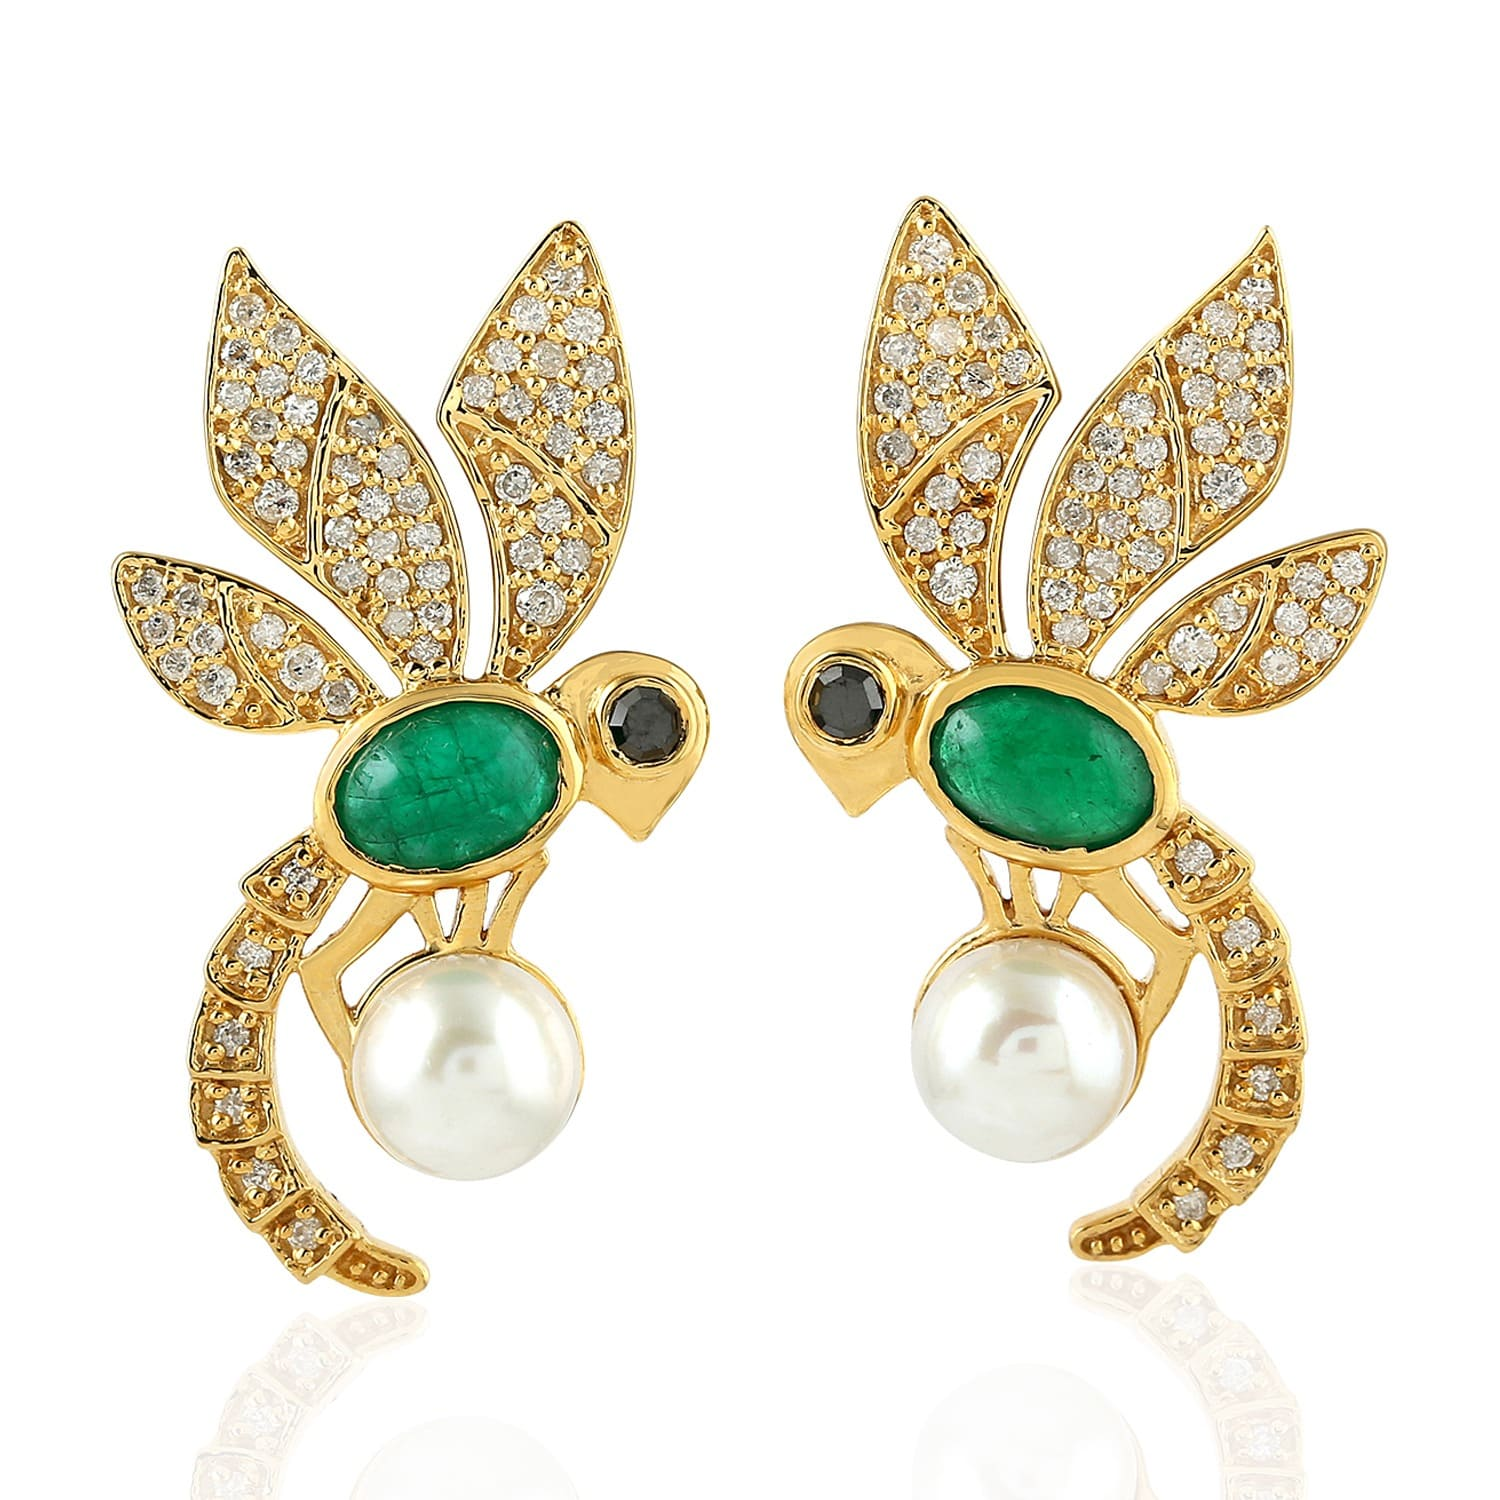 95f980f01 18K Gold Bee Earring With Pearl Emerald & Pave Diamonds | Artisan ...